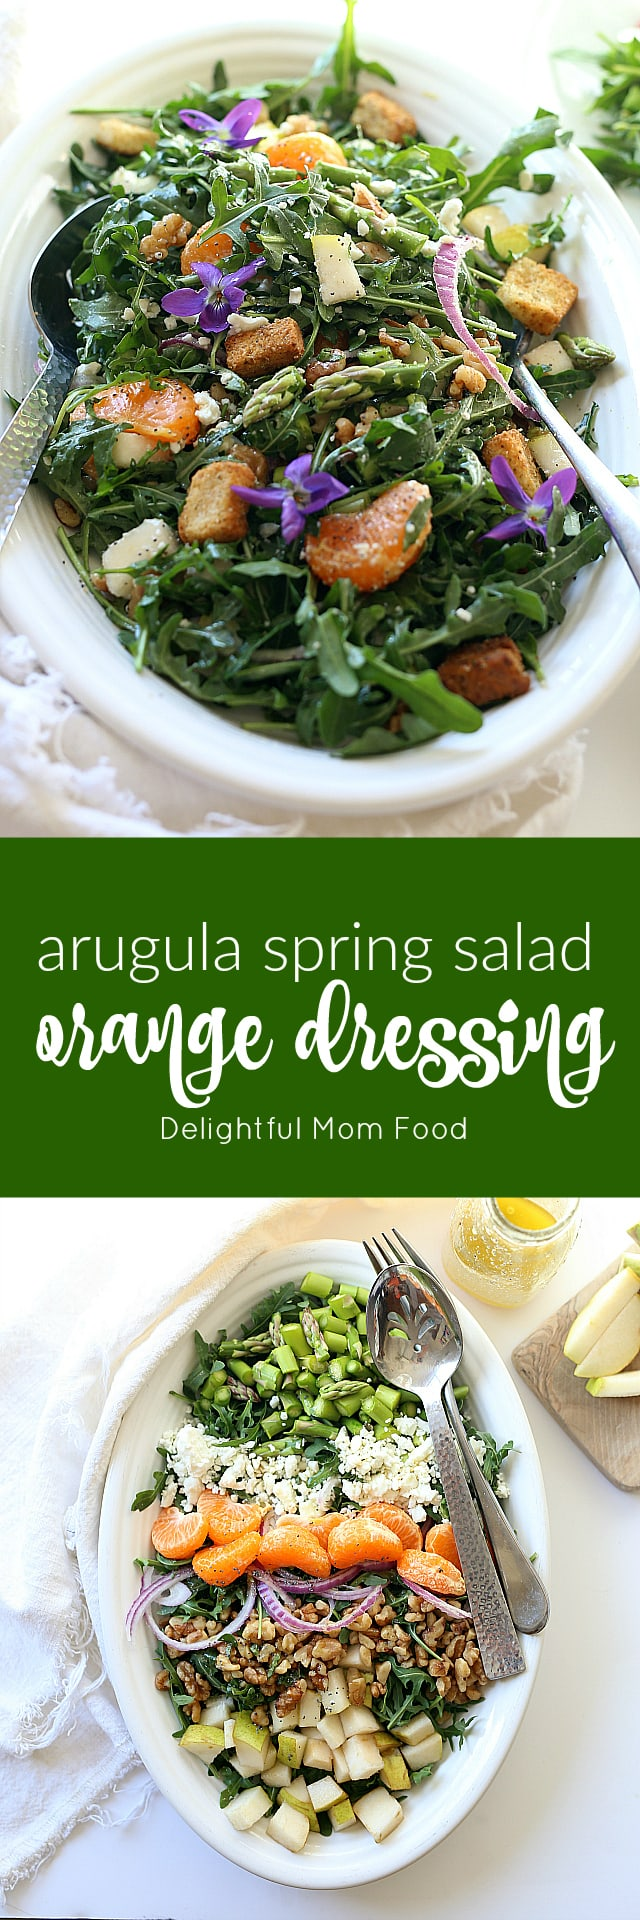 The lightest most satisfying vegetarian arugula salad packed with rocket (rucola) leaves, meaty walnuts, earthy red onions, hints of feta, nutty asparagus vegetables and topped with a savory sweet mandarin orange salad dressing. Perfect for a spring brunch or dinner especially when the evenings are lighter longer!